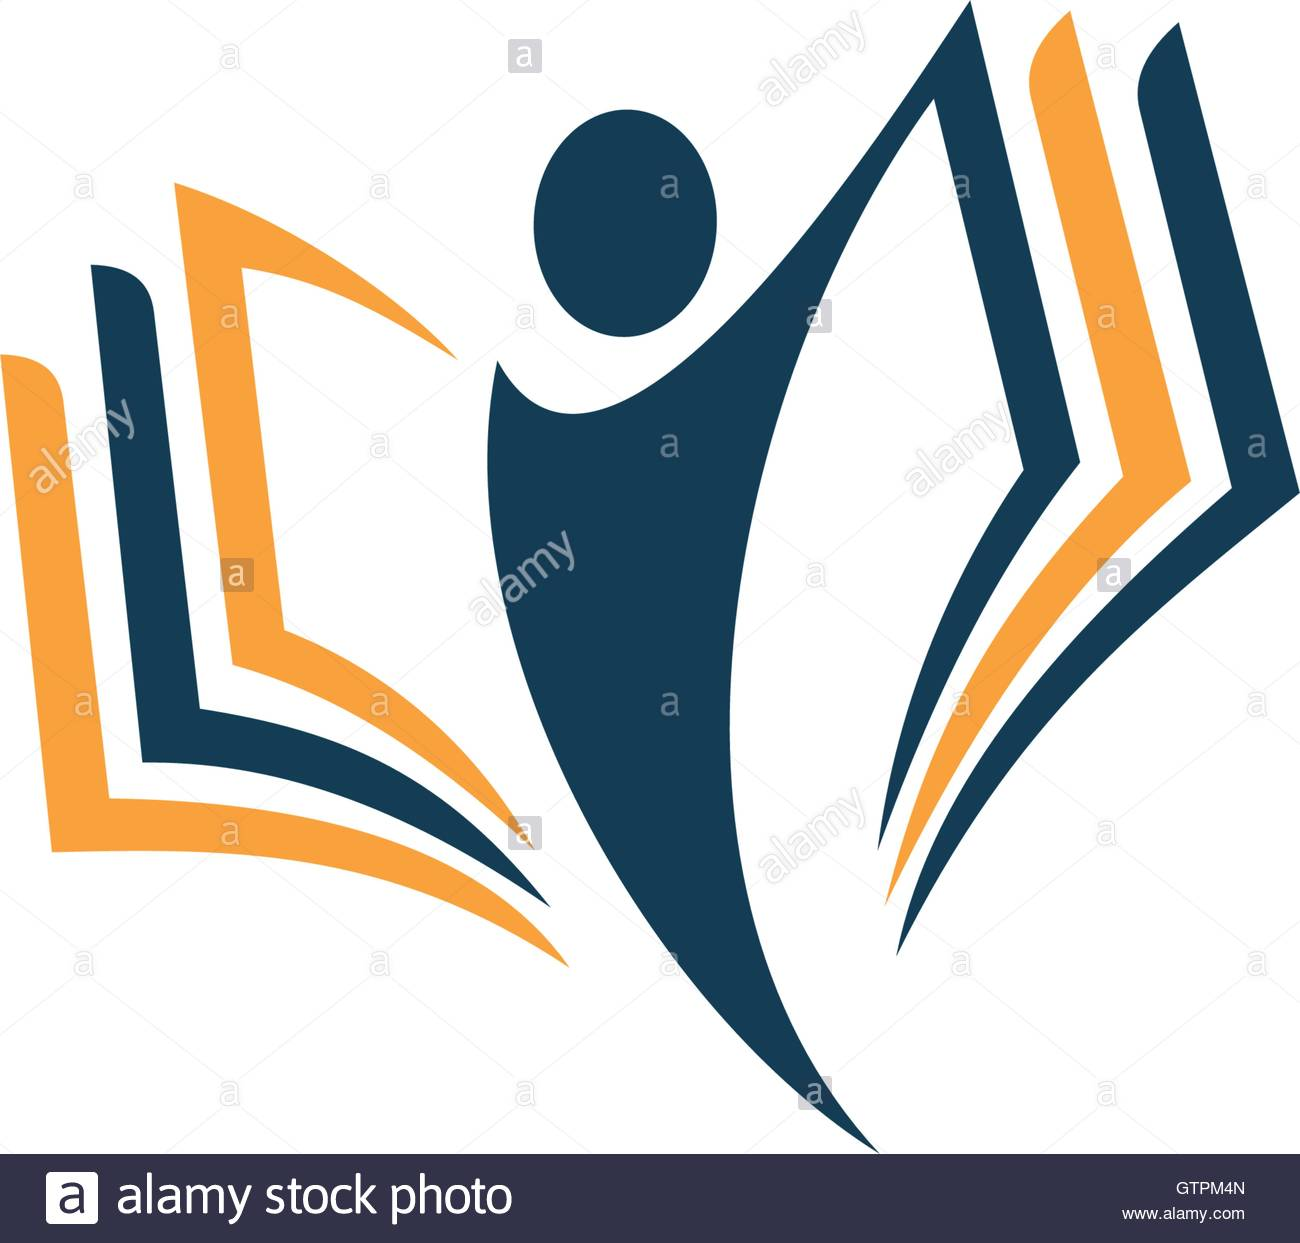 1300x1243 Isolated Abstract Human Silhouette With Book Vector Logo. School